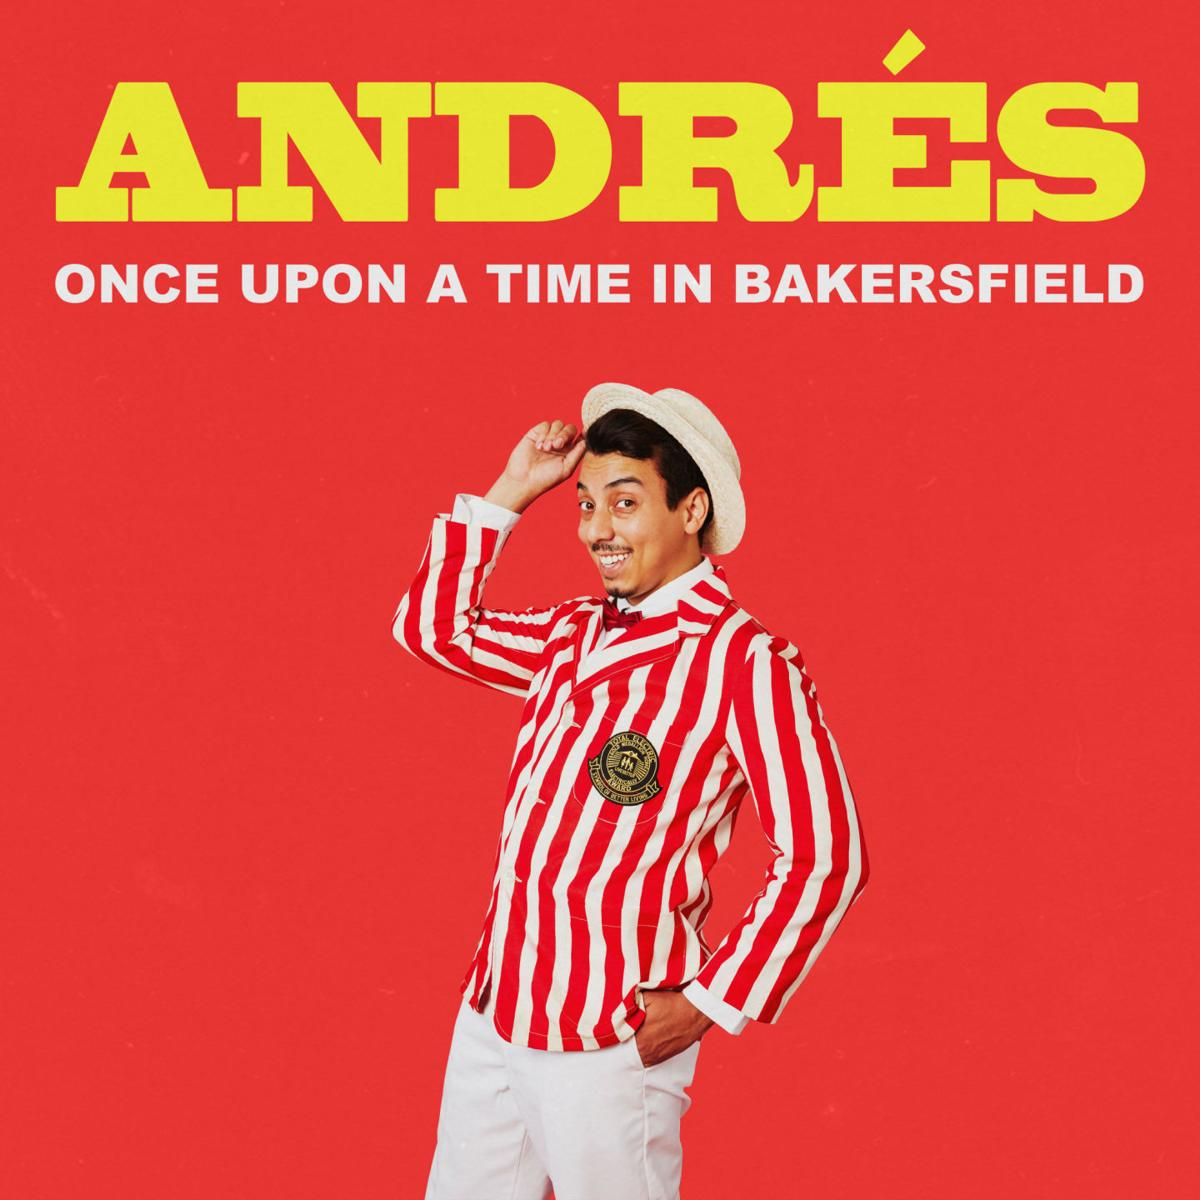 andres once upon a time in bakersfield